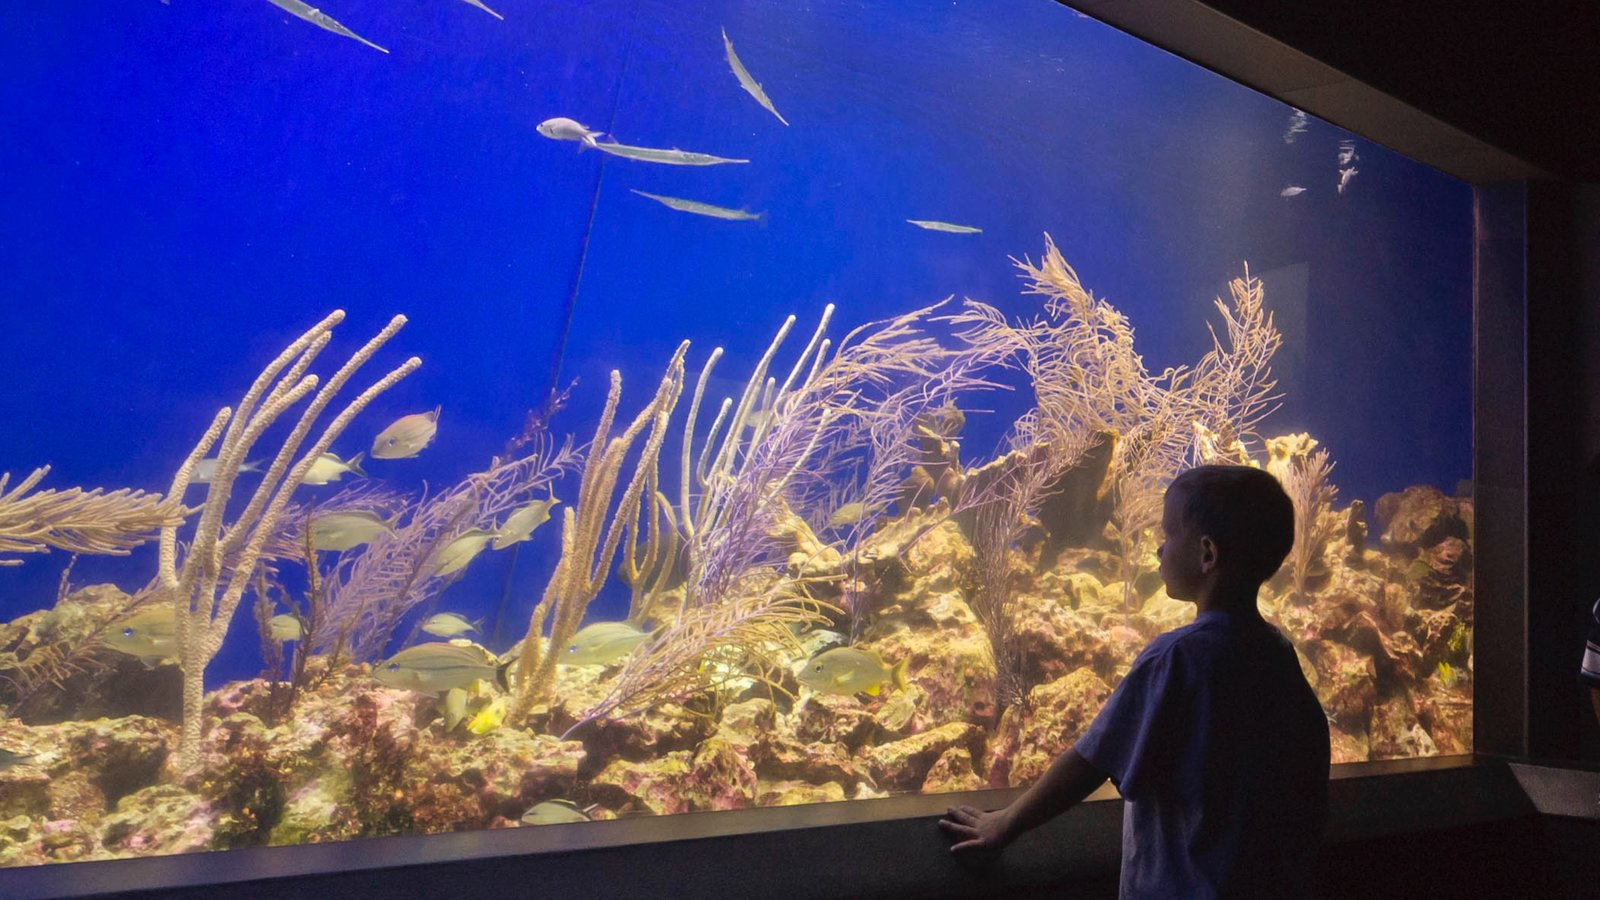 Henry Doorly Zoo & Aquarium Pictures: View Photos & Images of ...